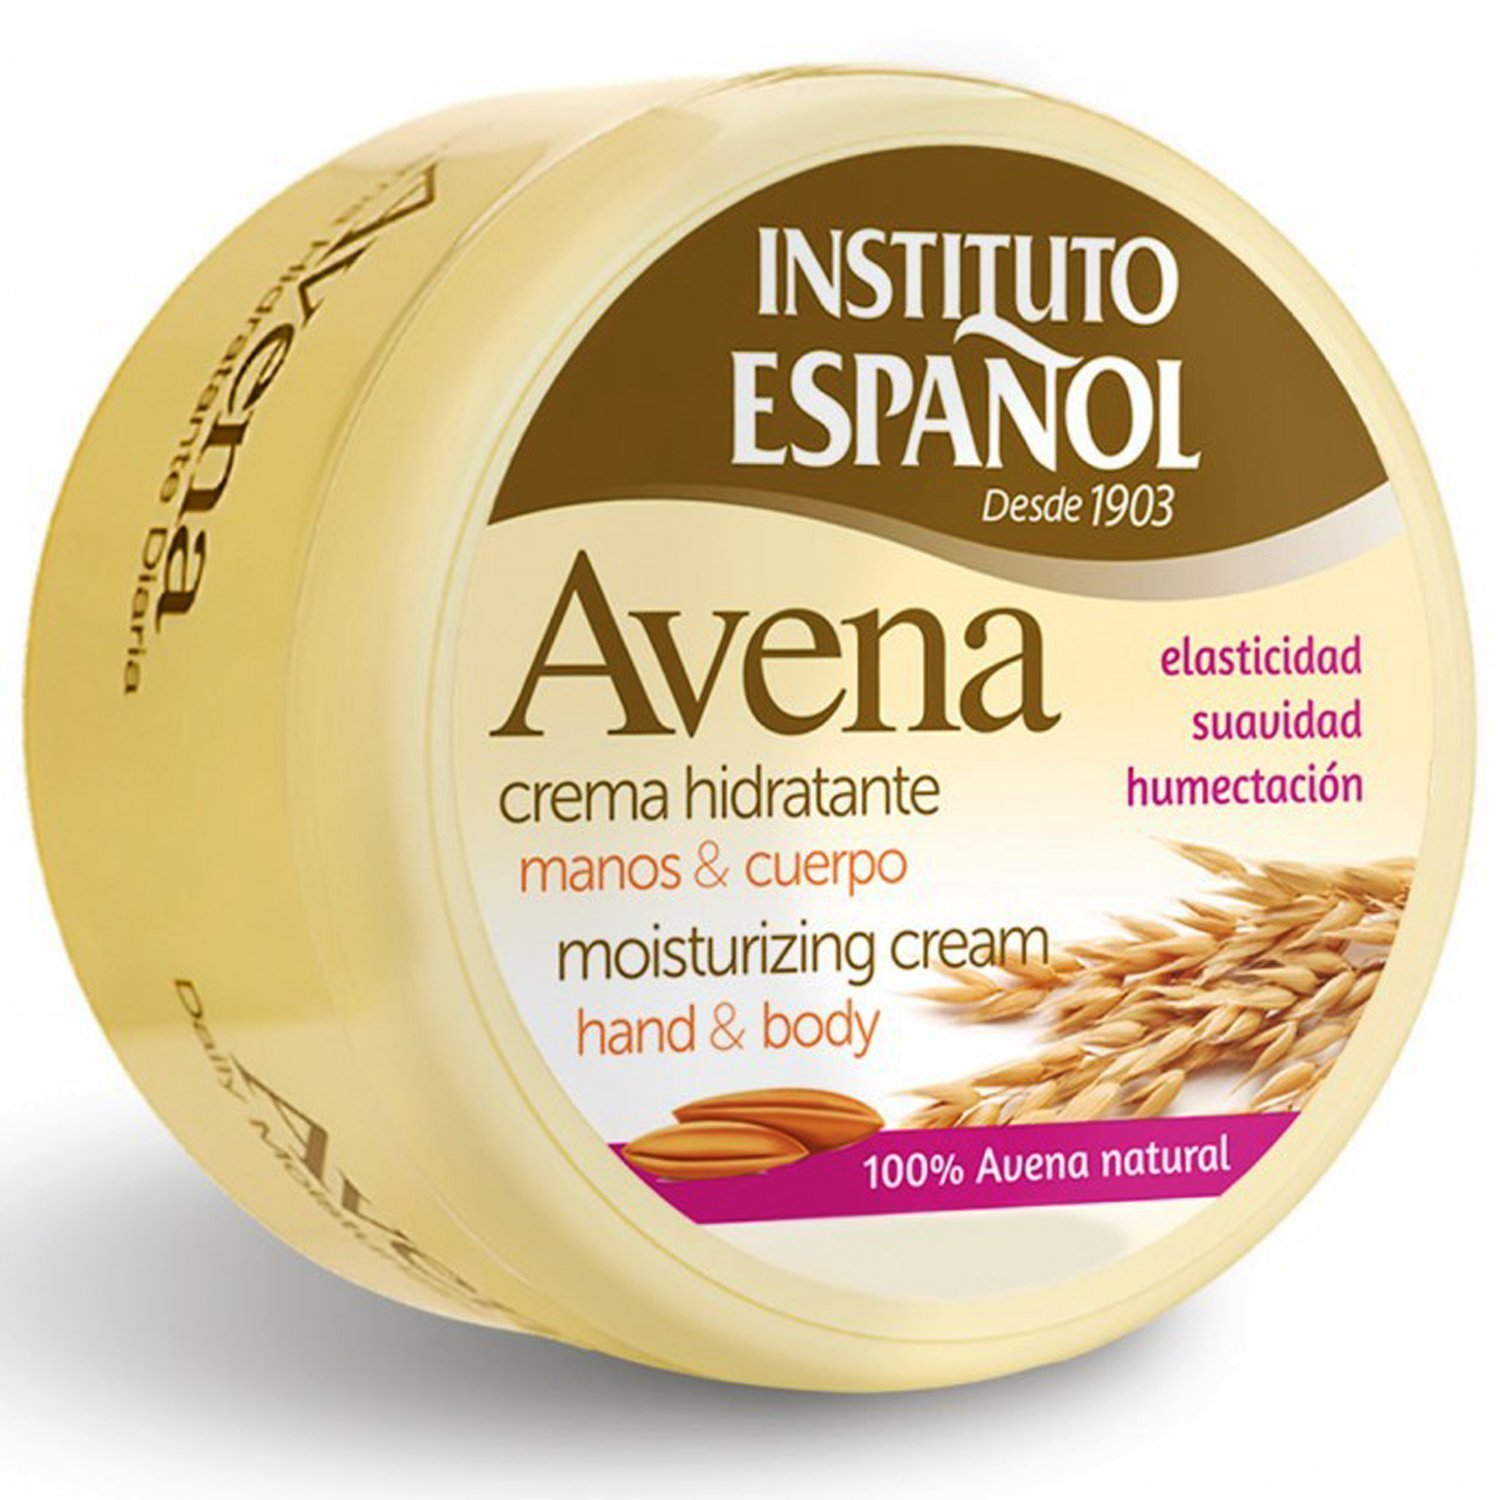 Avena Daily Moisturizing Hand Body Cream 6.8 oz Pack of 10